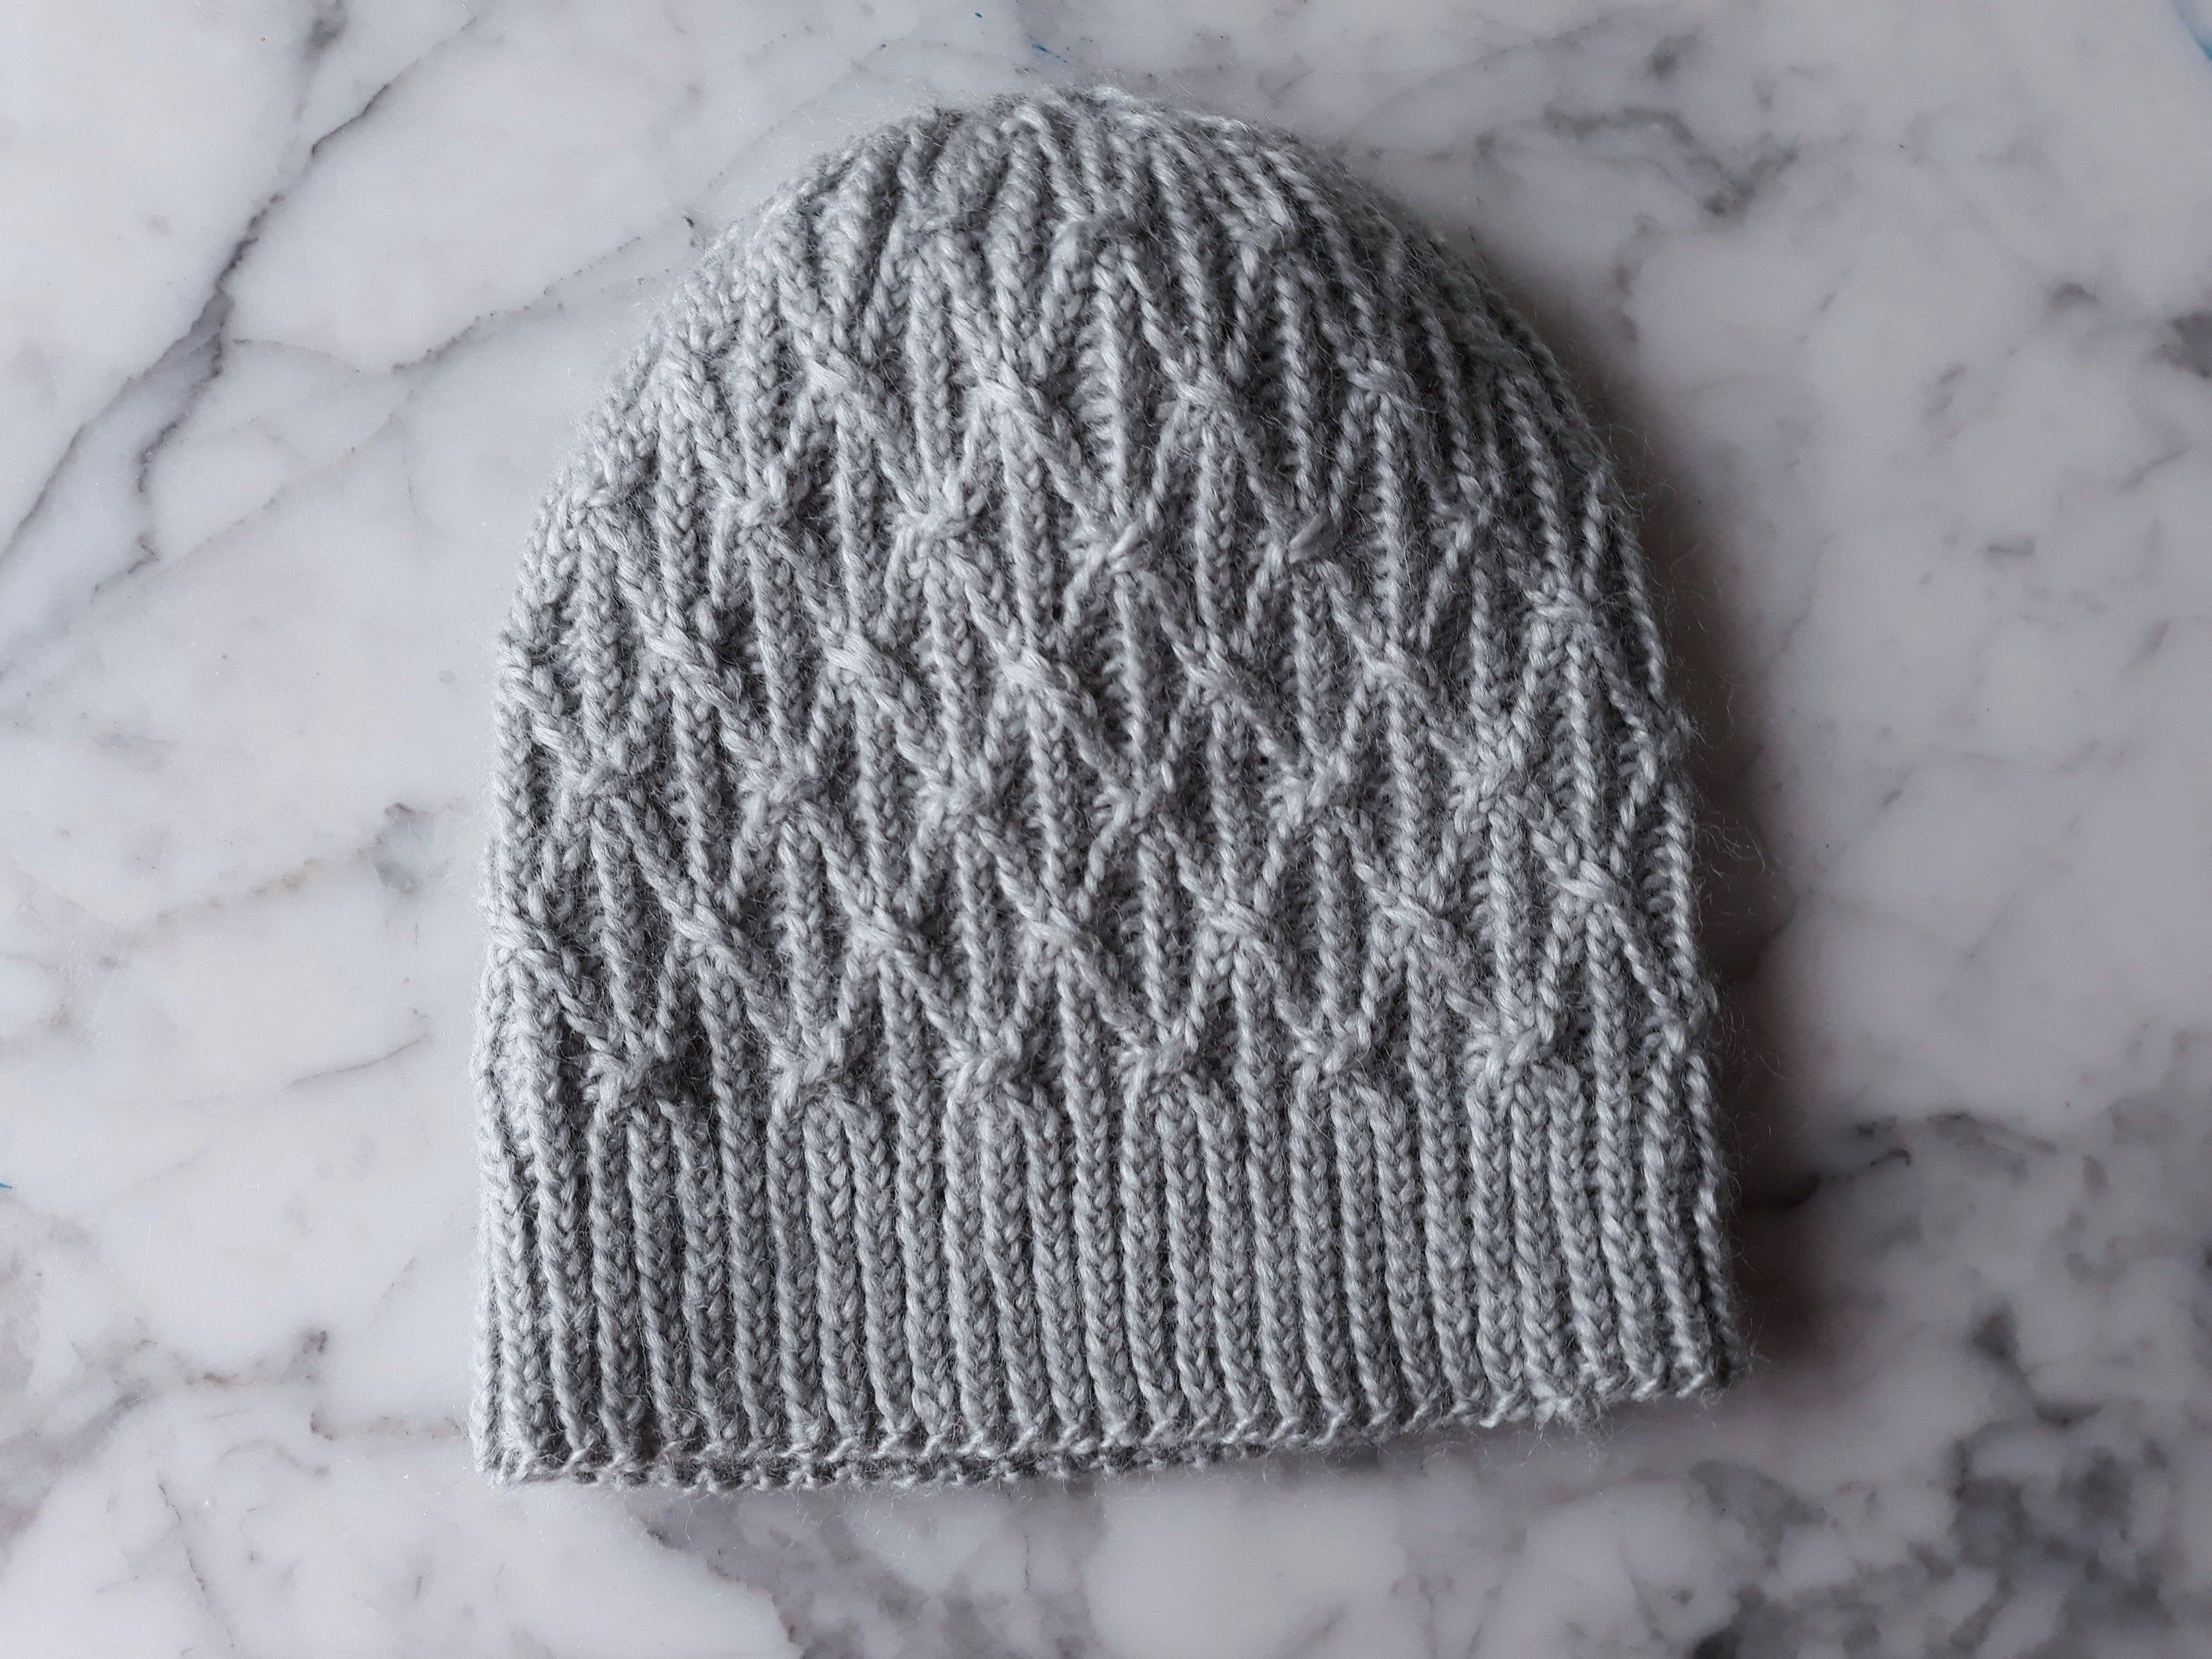 Cable Knit Beanie Handknit Hat In Natural Fibres Wool Bamboo Aran Hat Beanie For Him Beanie For Her Made In Ireland Original Design Cable Knit Hat Pattern Hand Knit Hat Hat